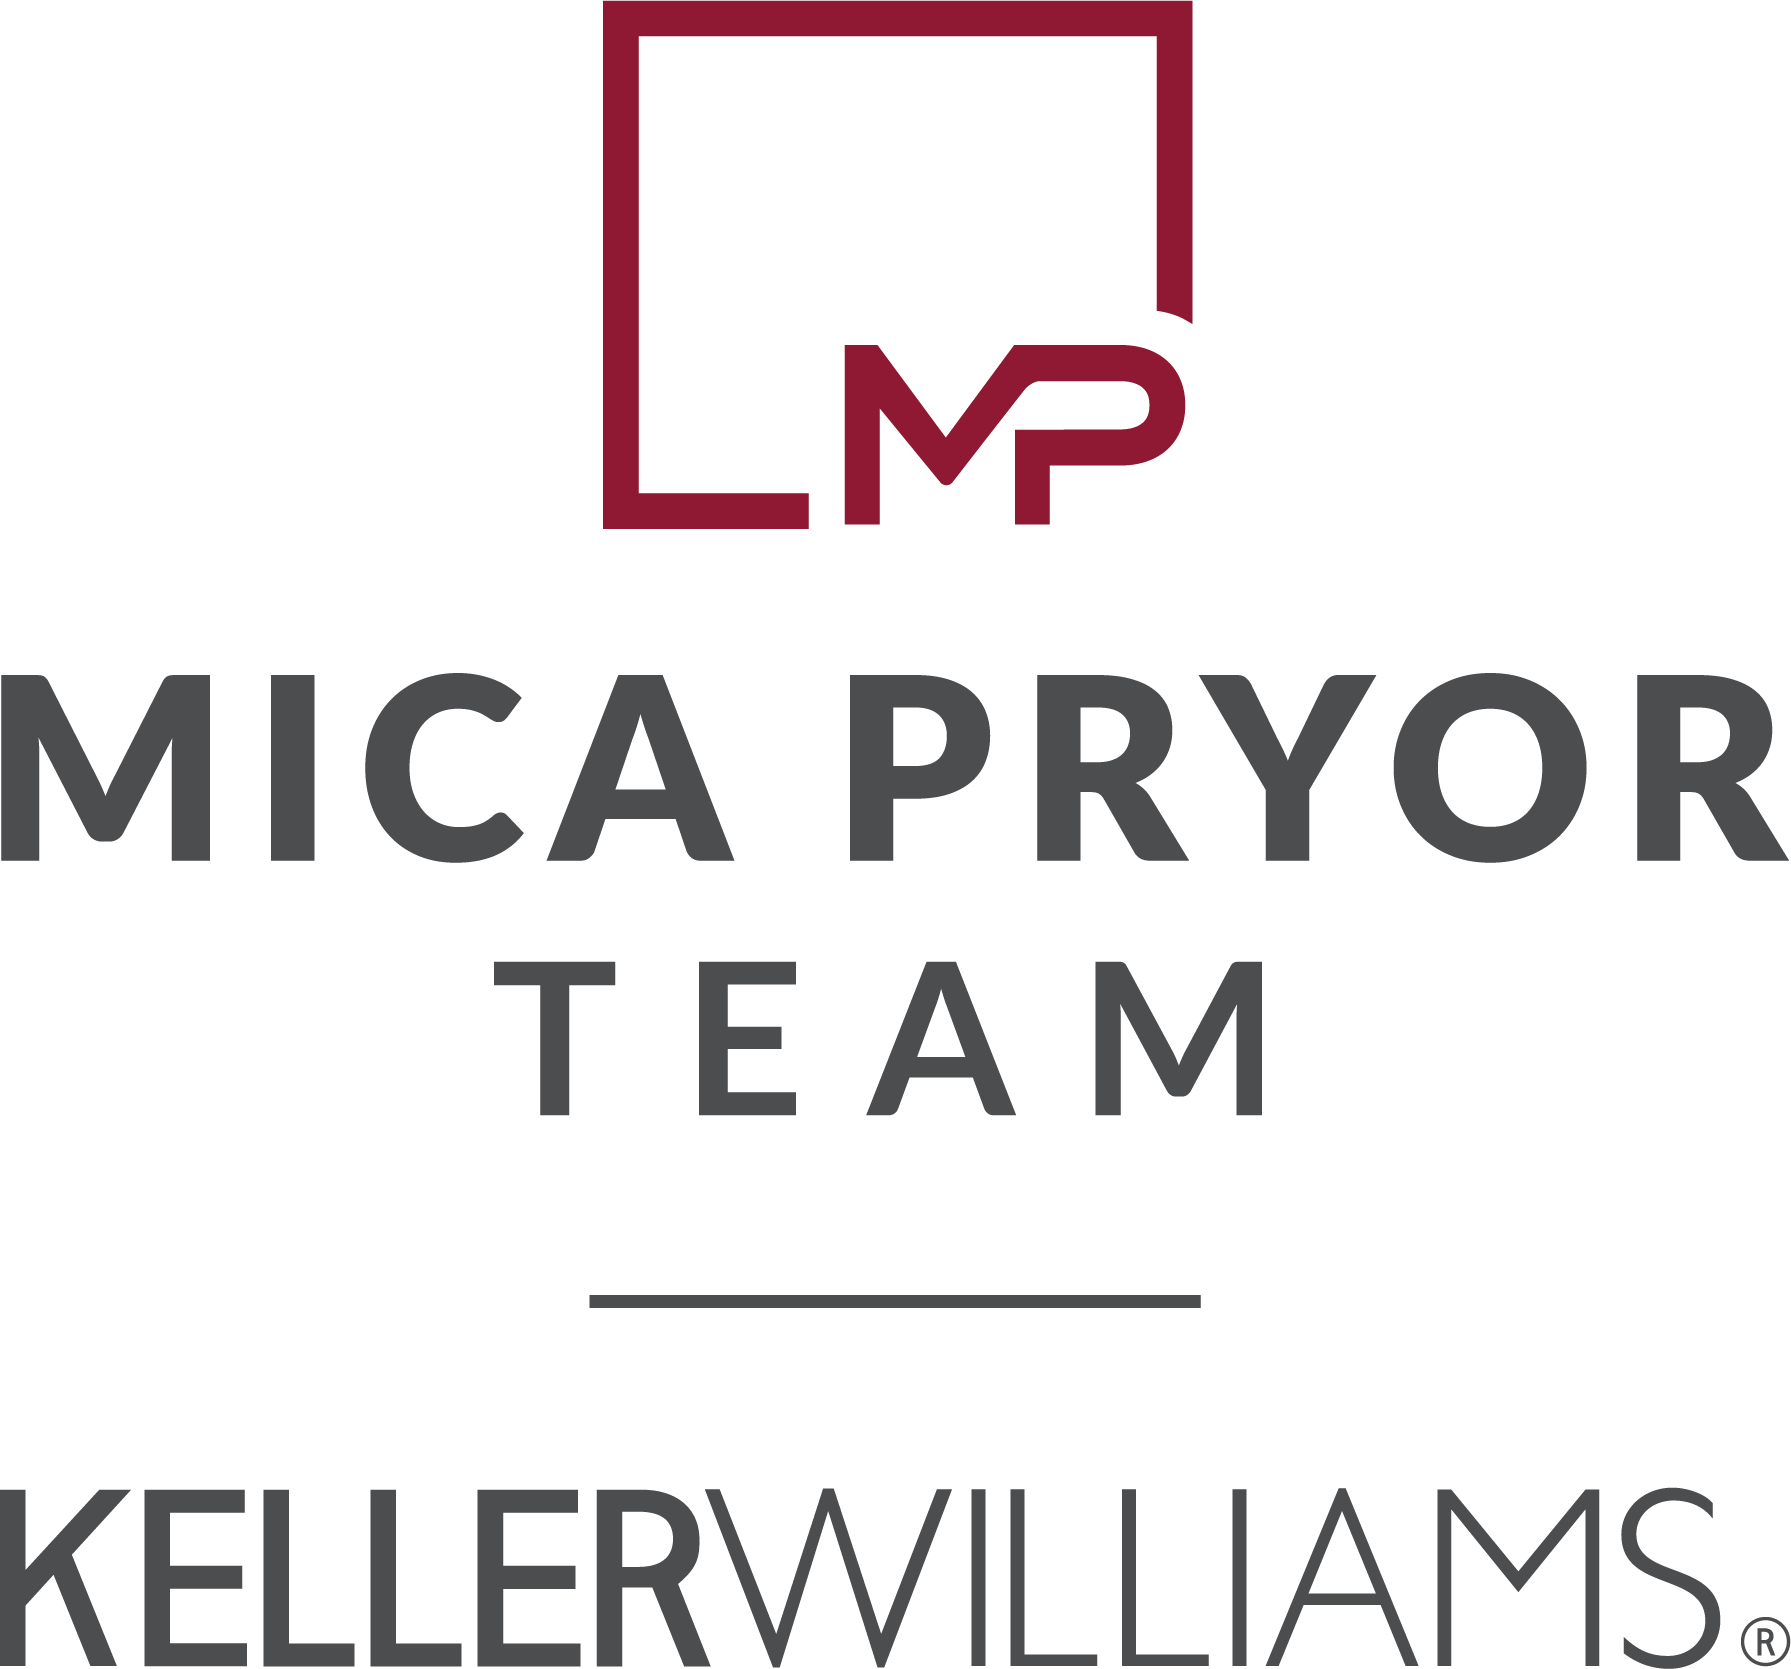 Mica Pryor Team | Keller Williams